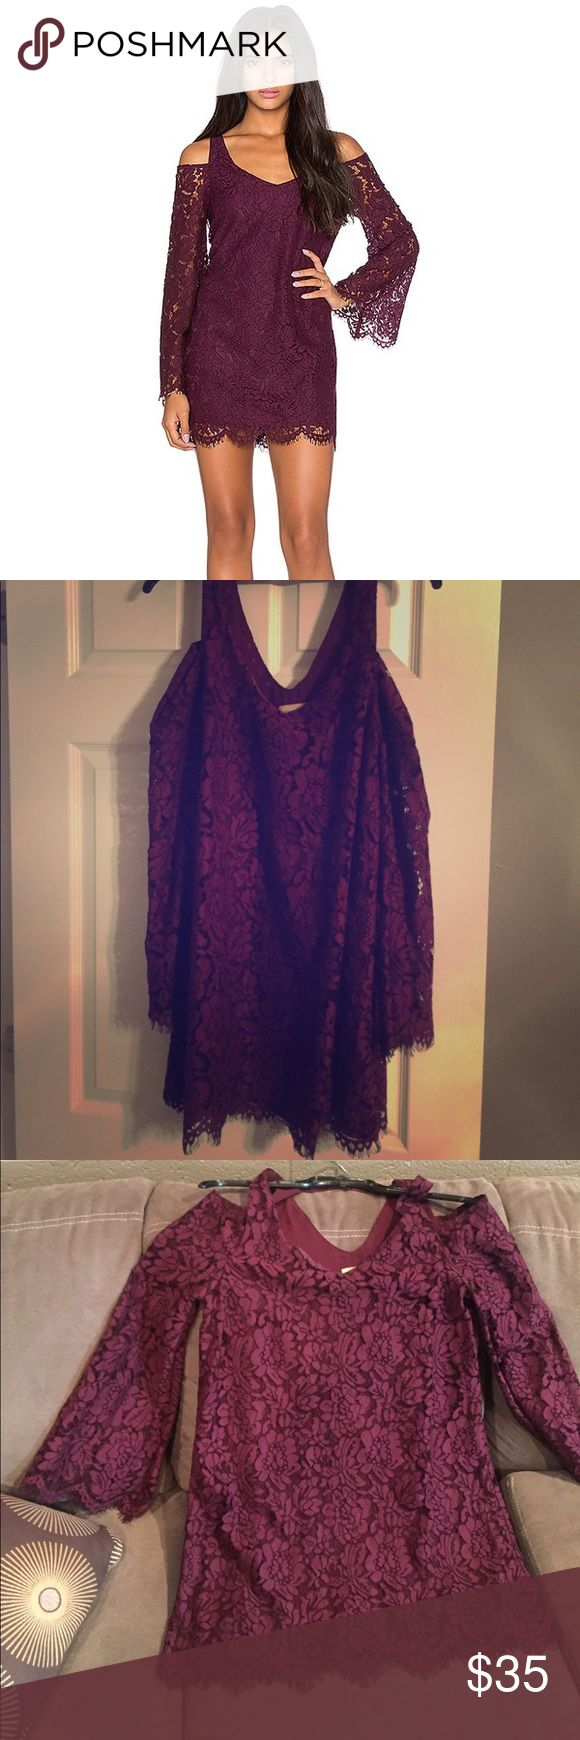 NWOT purple lace dress. Chaser Purple bell sleeve dress by Chaser. This dress is brand new, and has never been worn. Chaser Dresses Mini